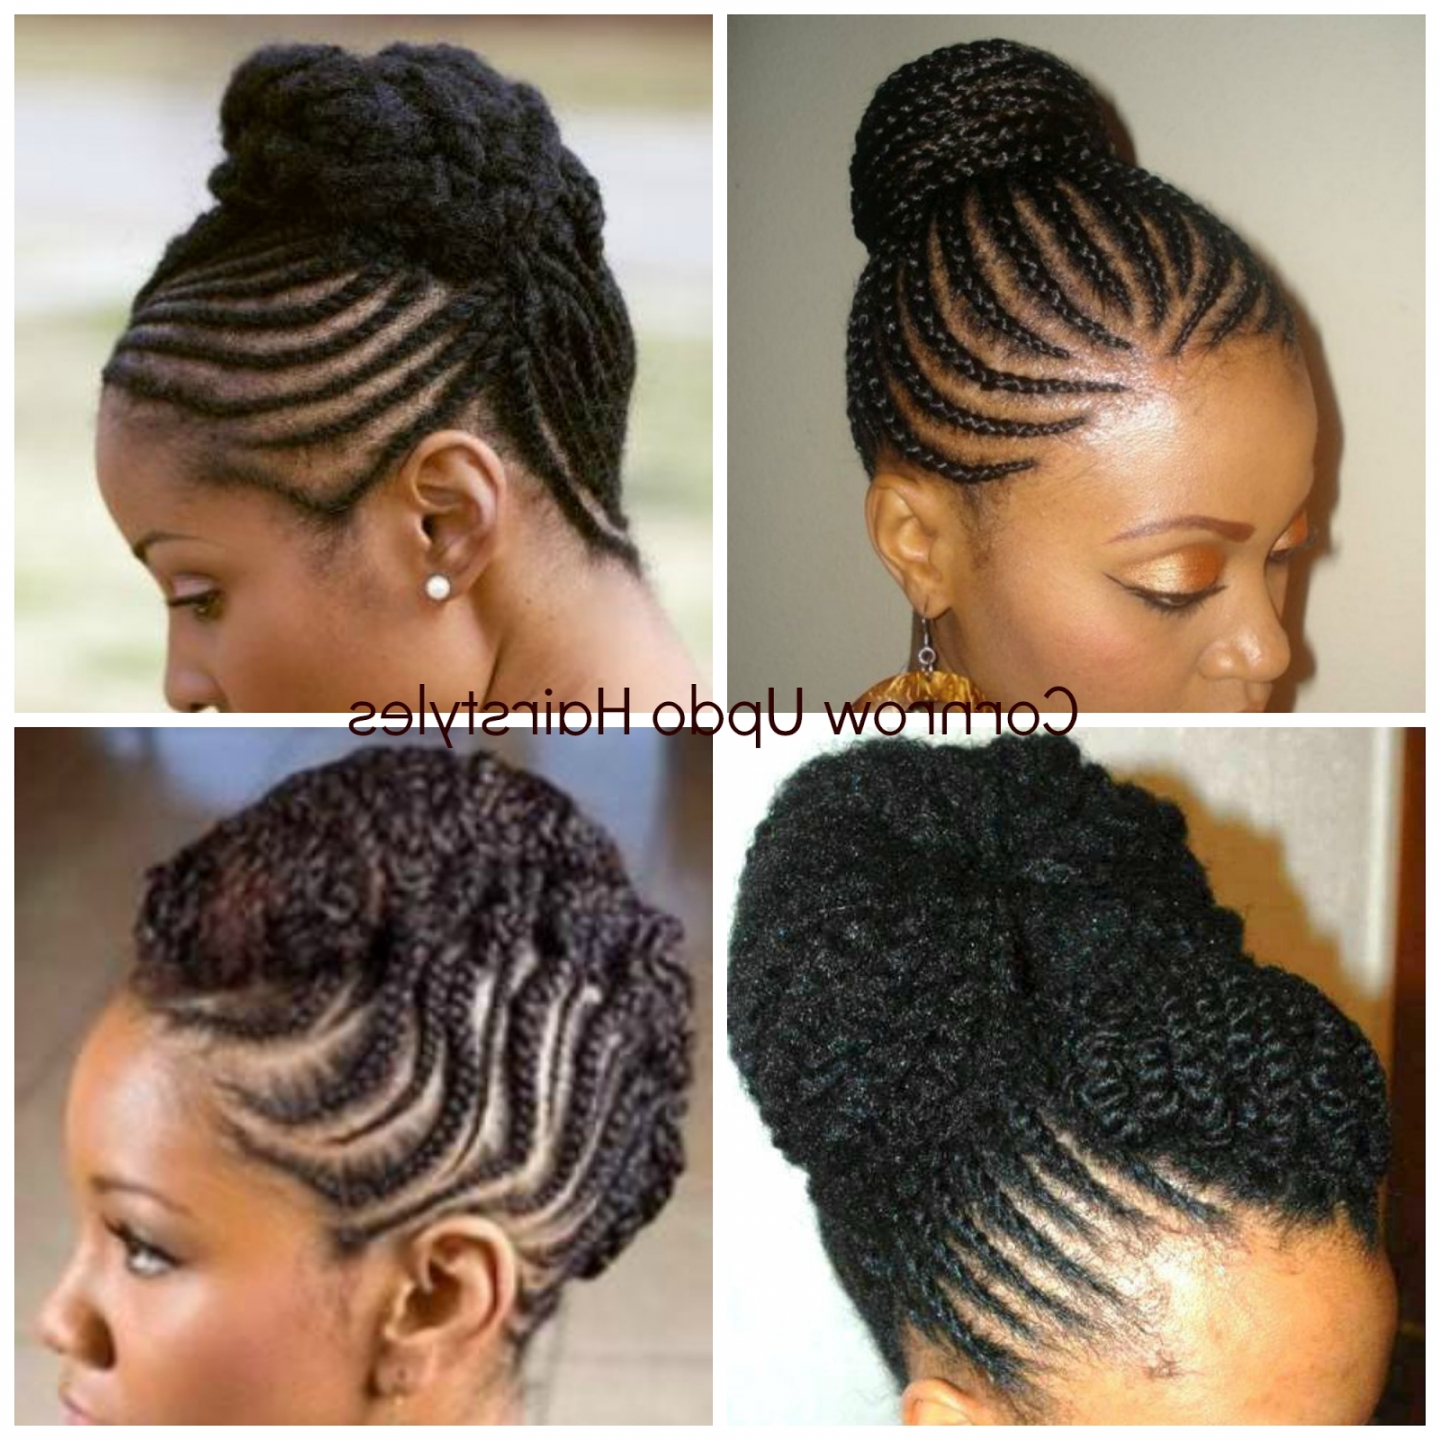 Corn Rolls Hair Style Cornrow Hairstyles Updo Black Hair | Latest Regarding Elegant Cornrow Updo Hairstyles (View 8 of 15)